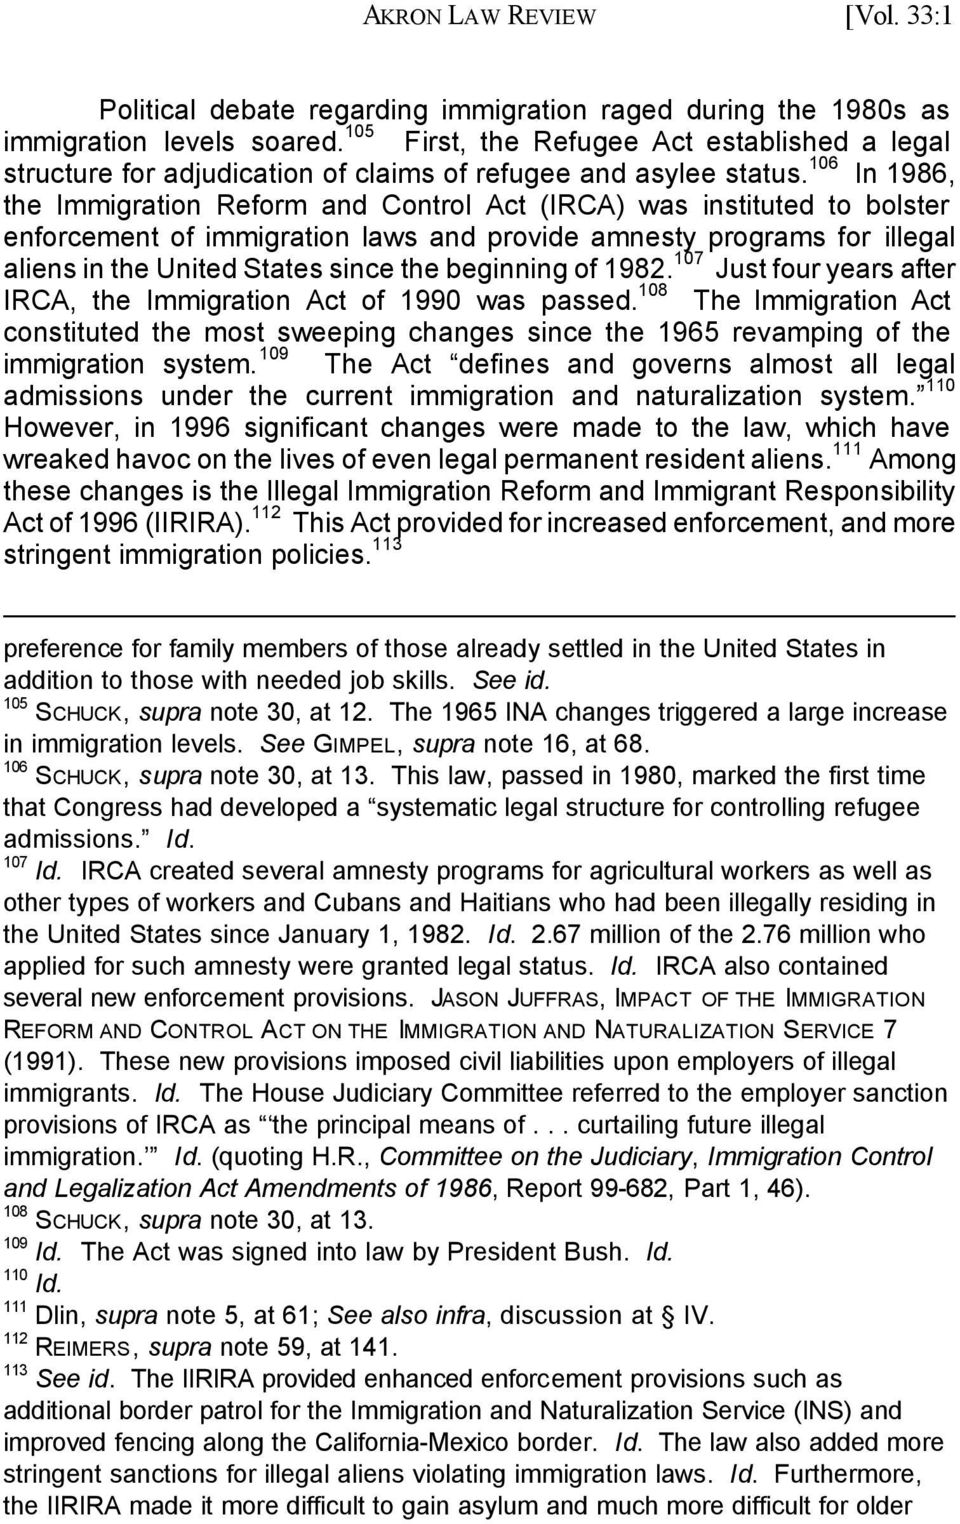 106 In 1986, the Immigration Reform and Control Act (IRCA) was instituted to bolster enforcement of immigration laws and provide amnesty programs for illegal aliens in the United States since the